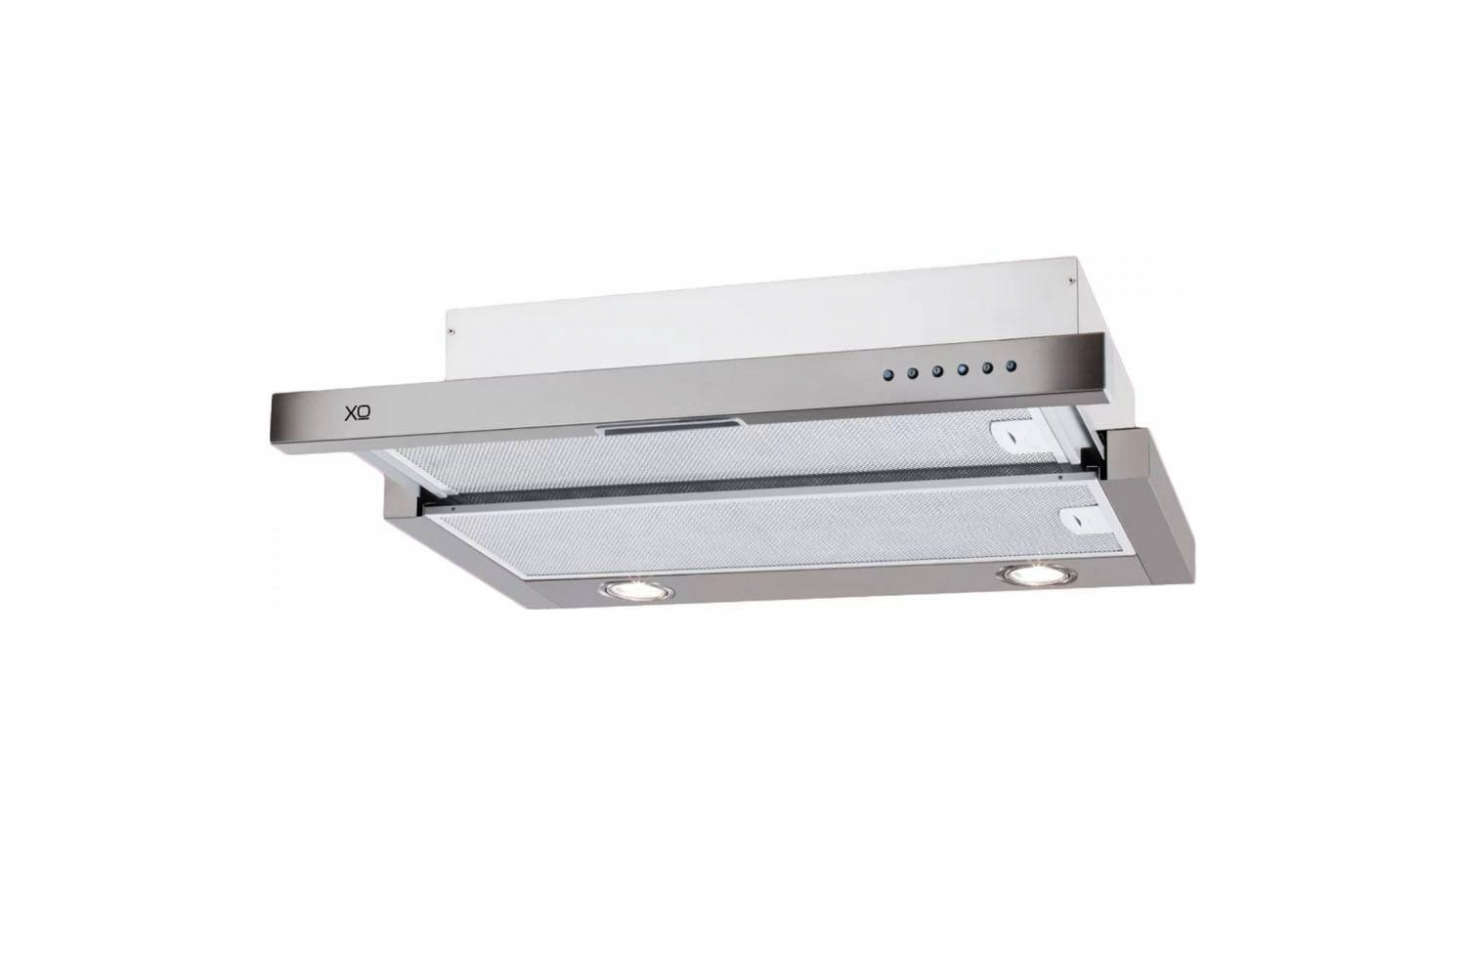 The XO Under Cabinet Glide Out Range Hood Is $599 For The 30 Inch